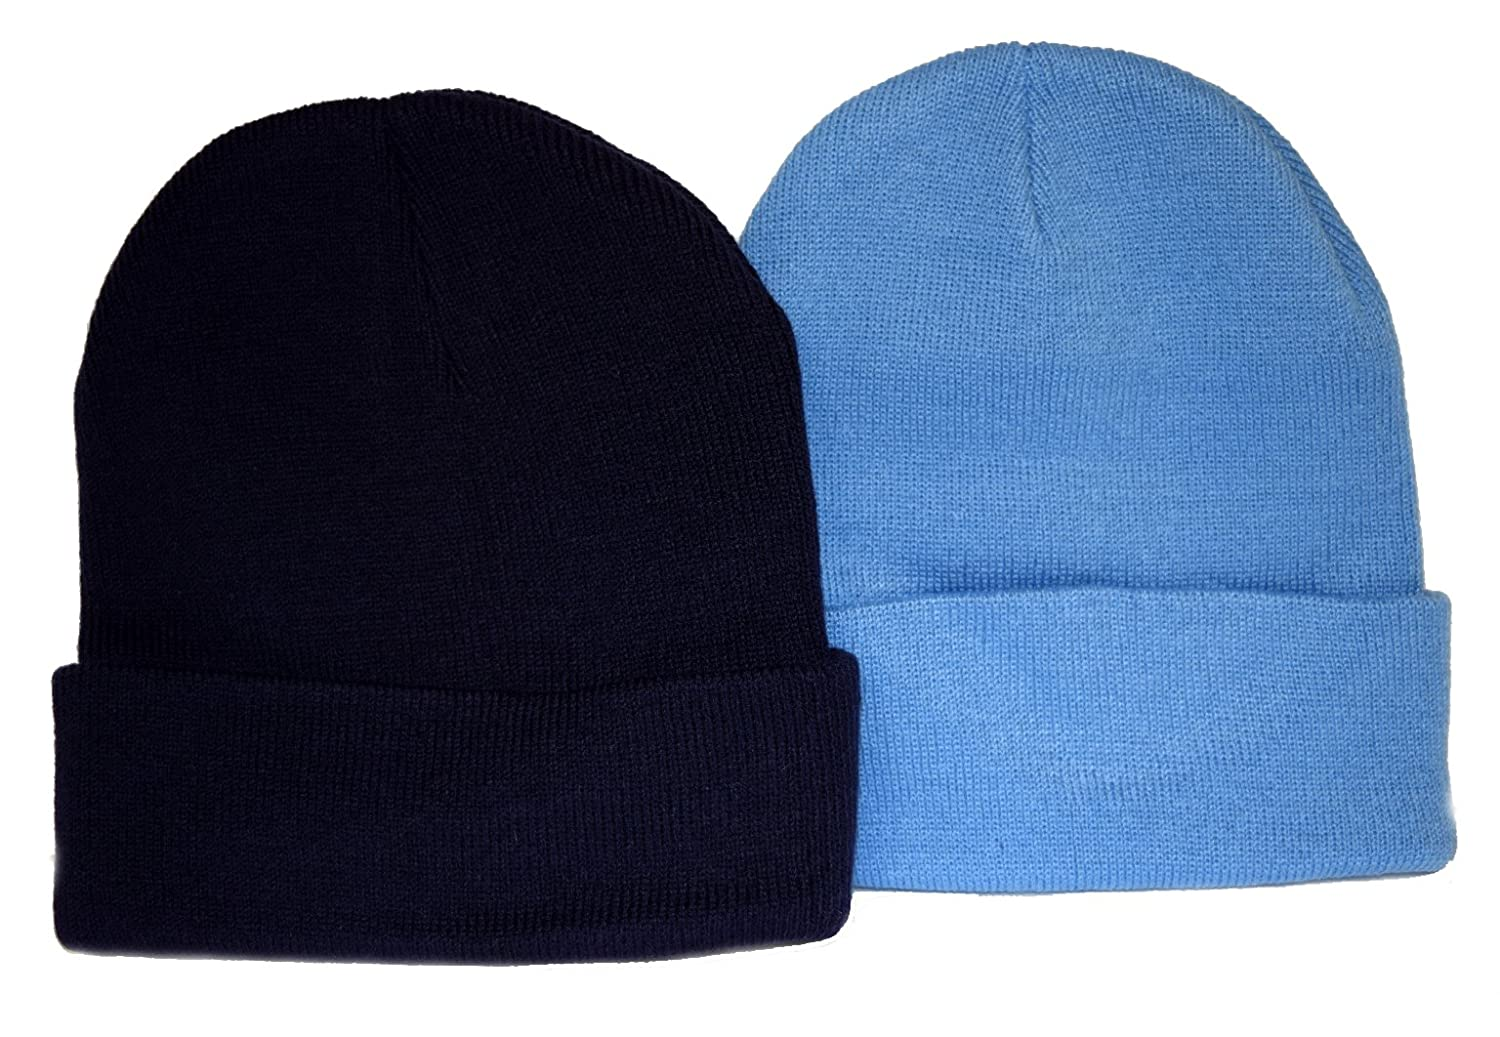 Holiday Deals! 2 Pack Knit Beanies/ Navy & Sky Blue